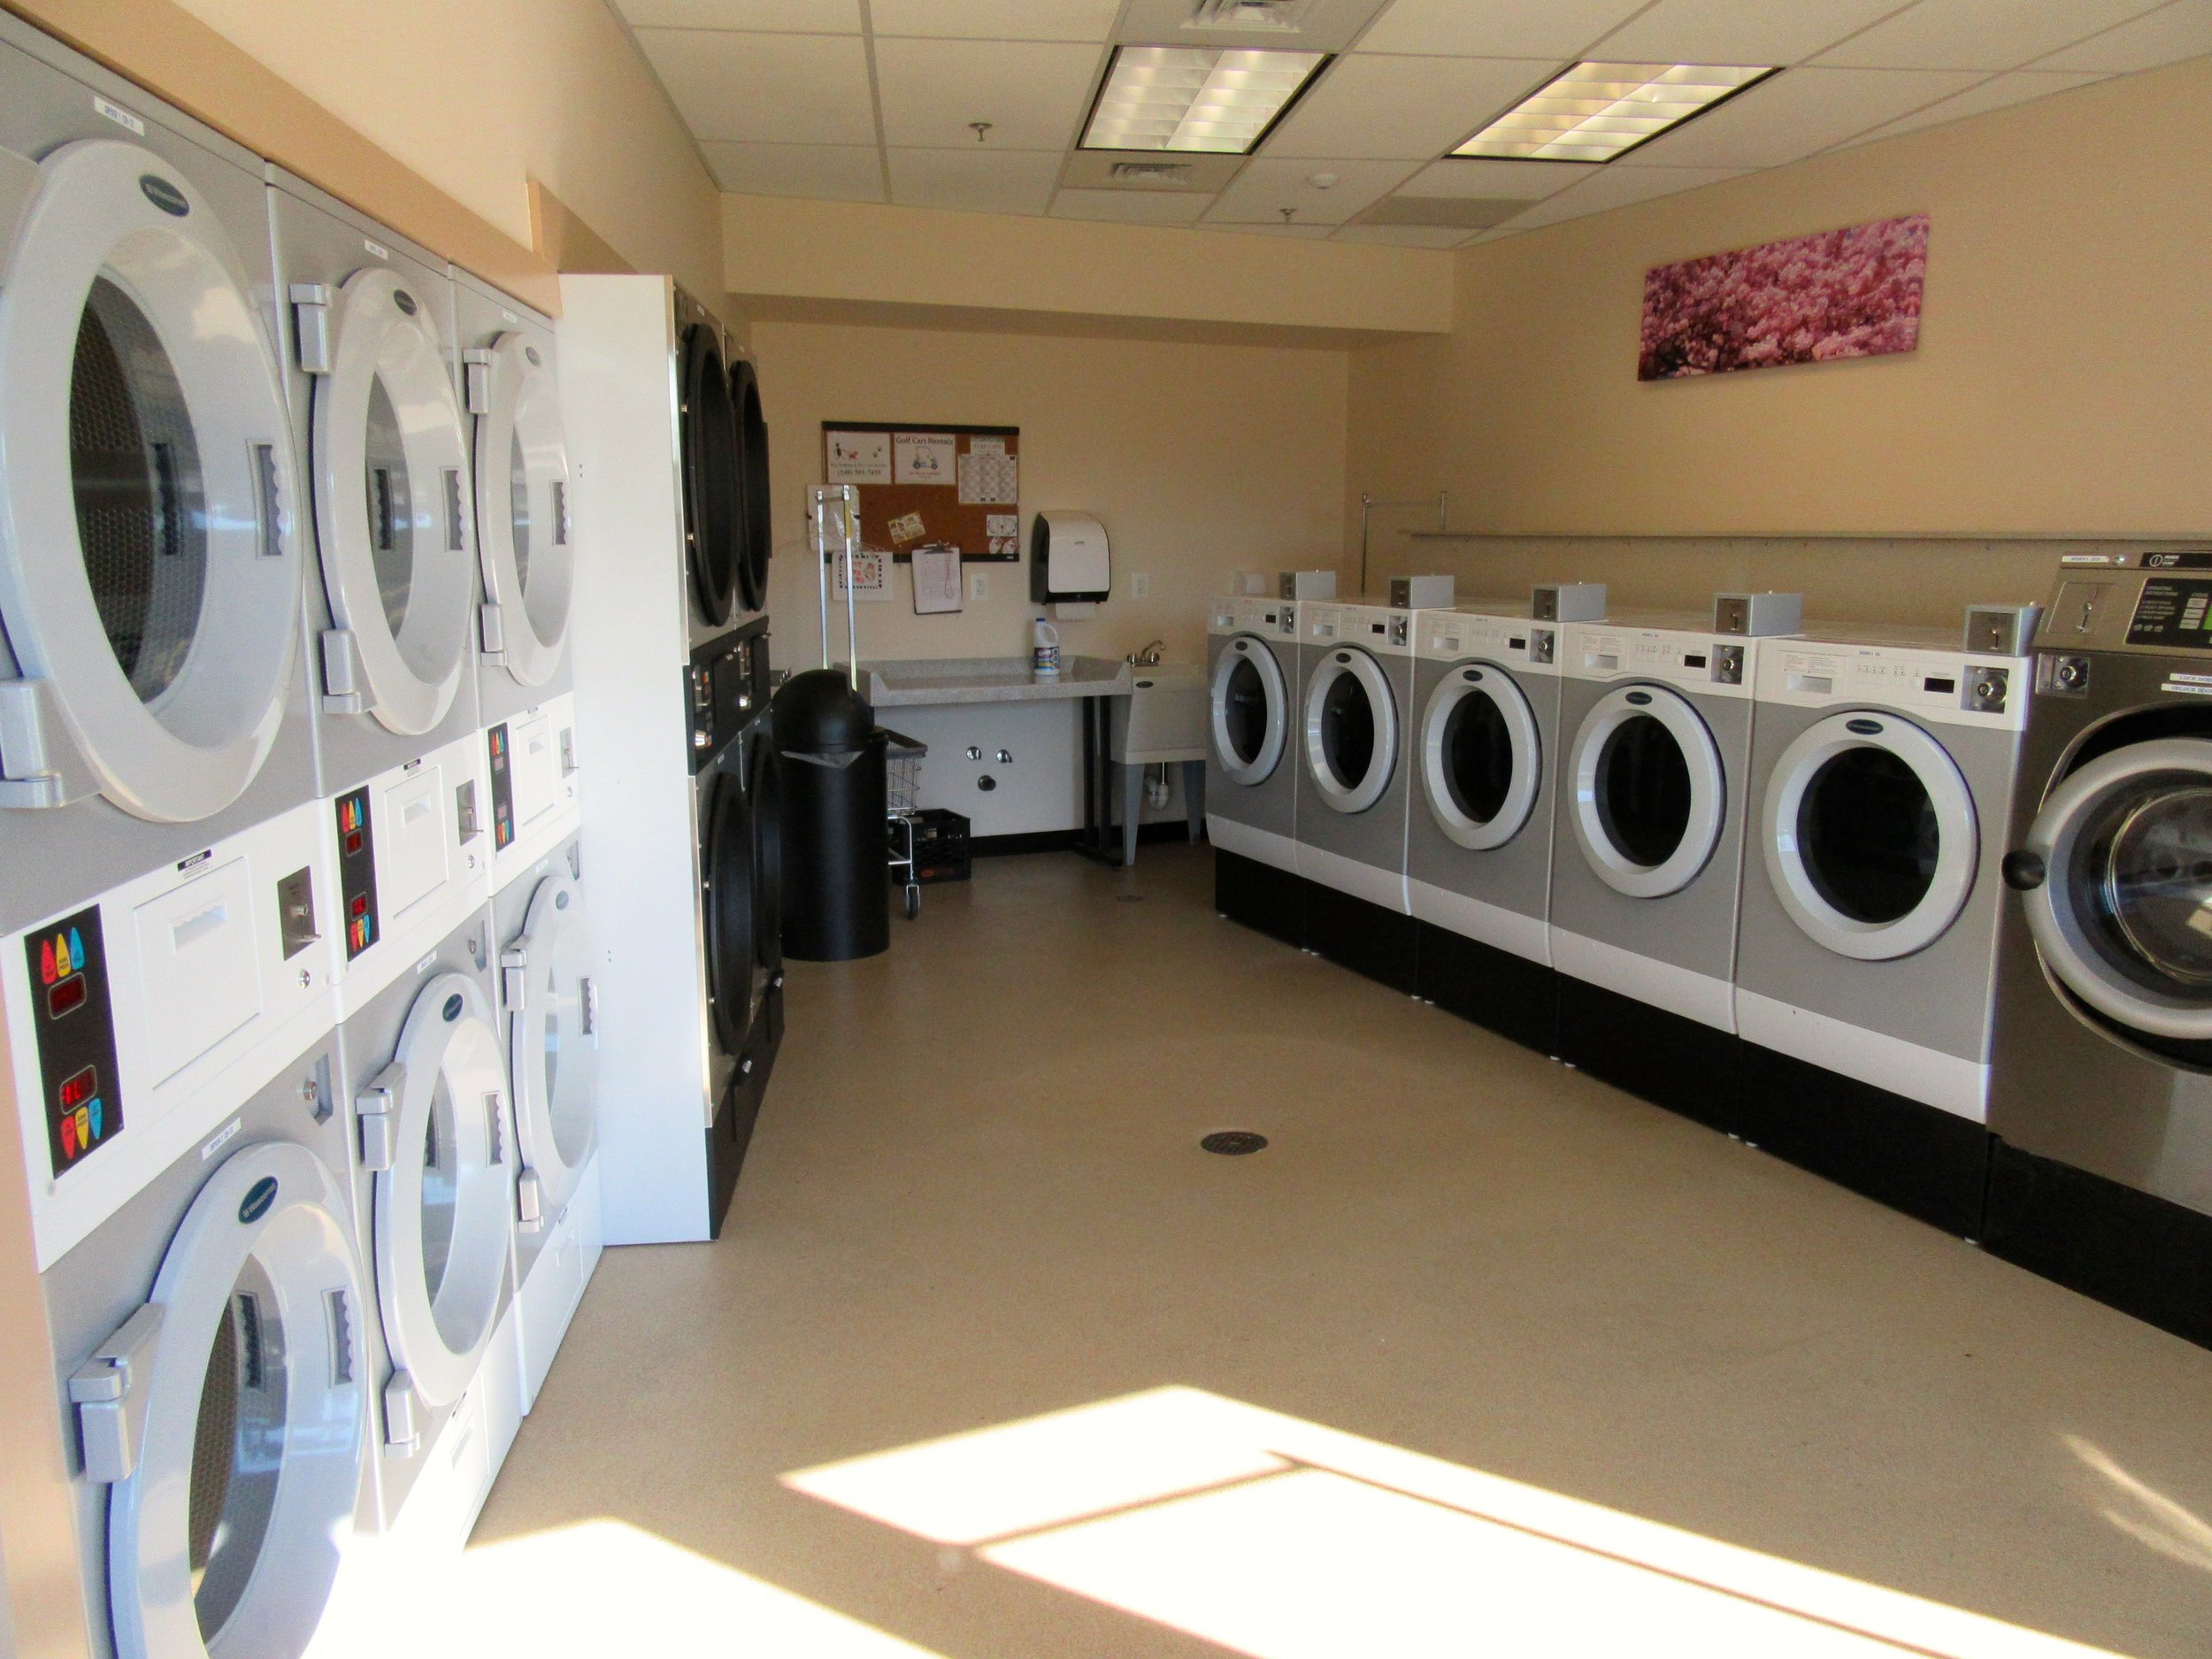 Rows of Washers and Dryers in Cherry Hill Park's Laundry Room